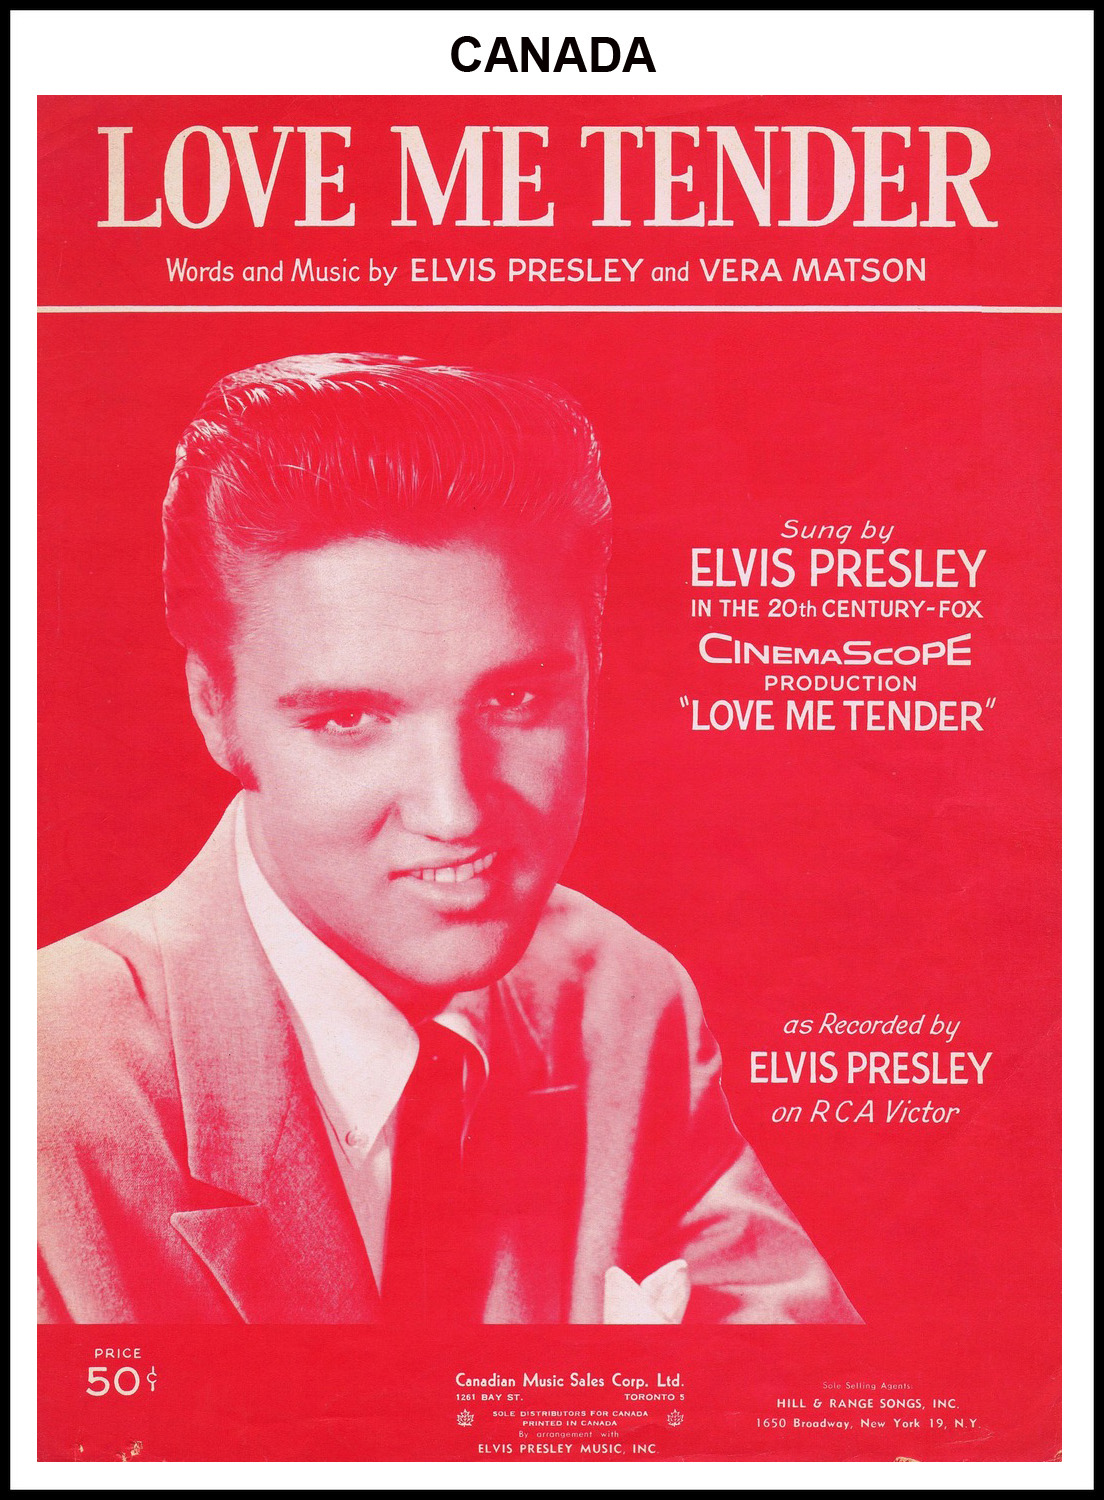 1956 - Love Me Tender (Canada) (CHRIS GILES COLLECTION)